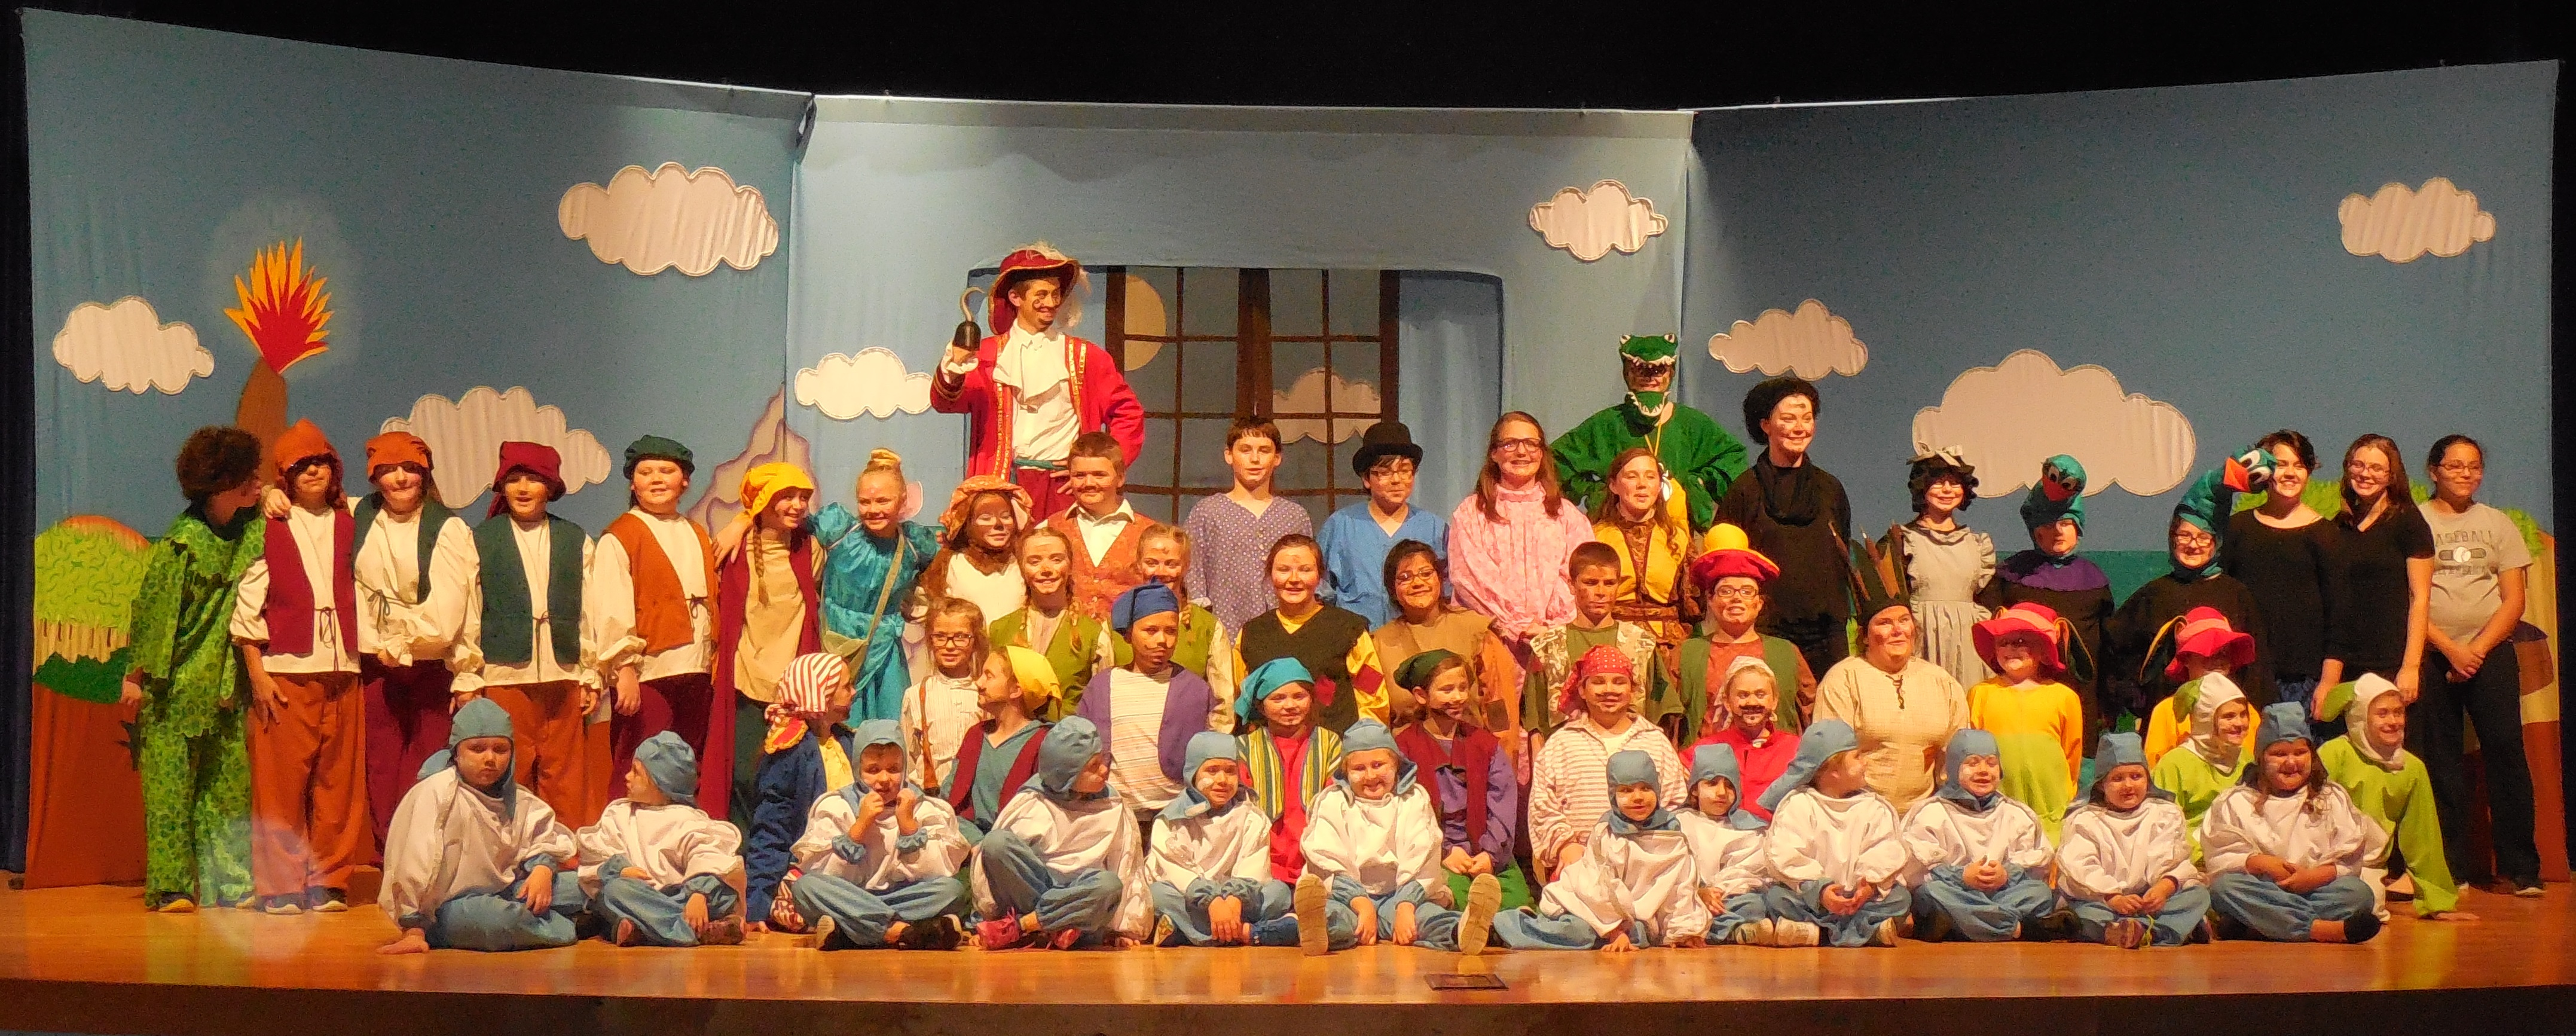 Missoula Children's Theatre and over 50 local students presented an original musical adaptation of Peter & Wendy on Friday, November 11th.